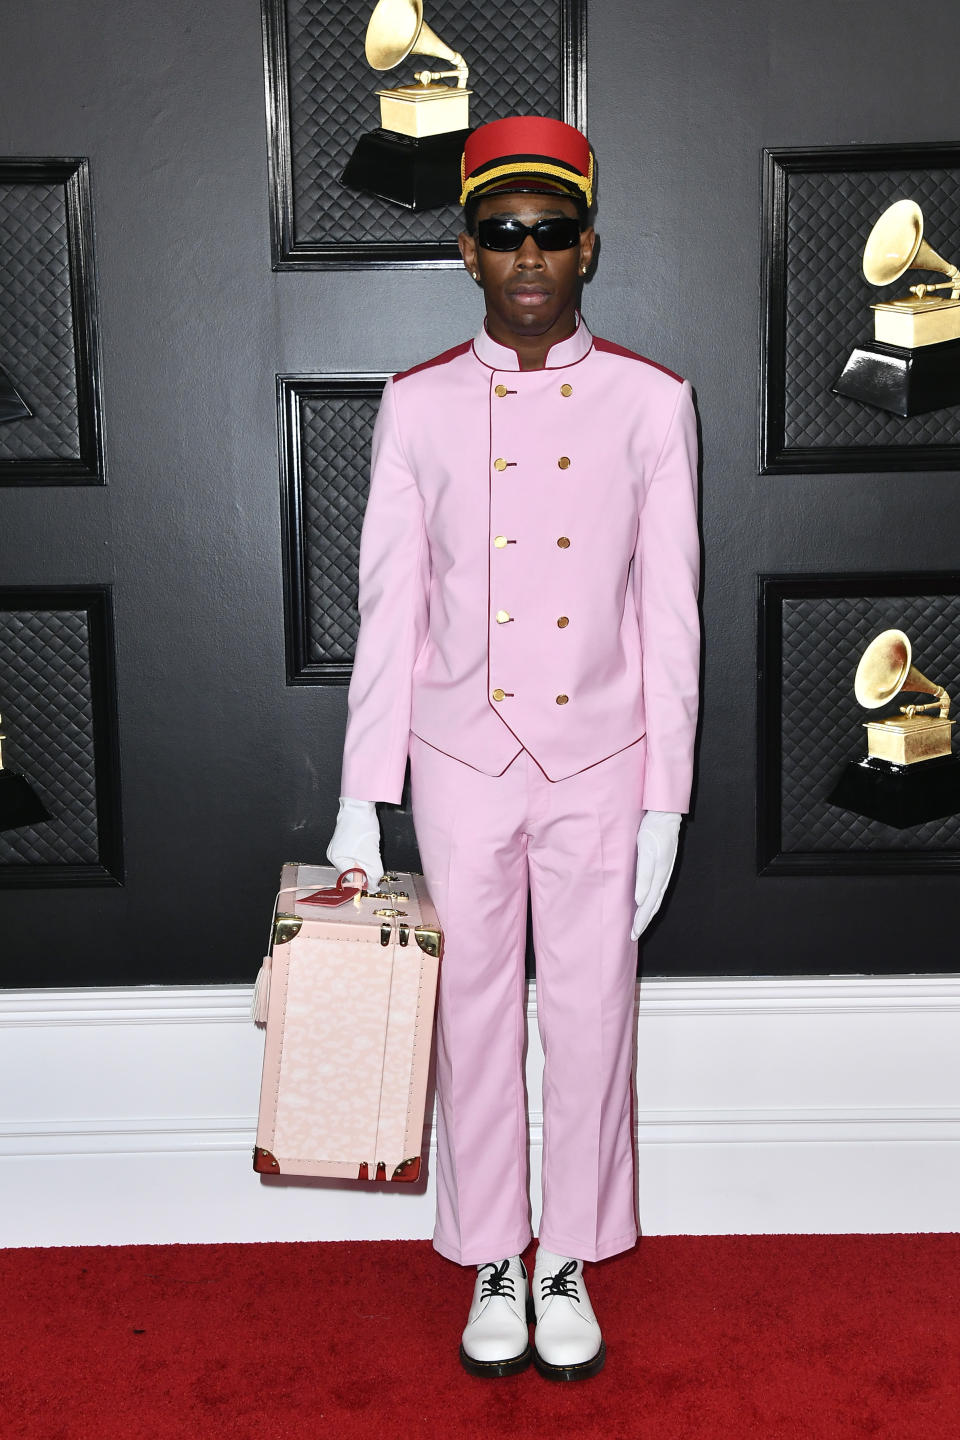 """The rapper wore a bell hop inspired suit from his own fashion line, Golf Wang. The 28-year-old Best Rap Album winner's quirky """"Grand Budapest Hotel"""" meets Grammys ensemble stood out in all the right ways."""